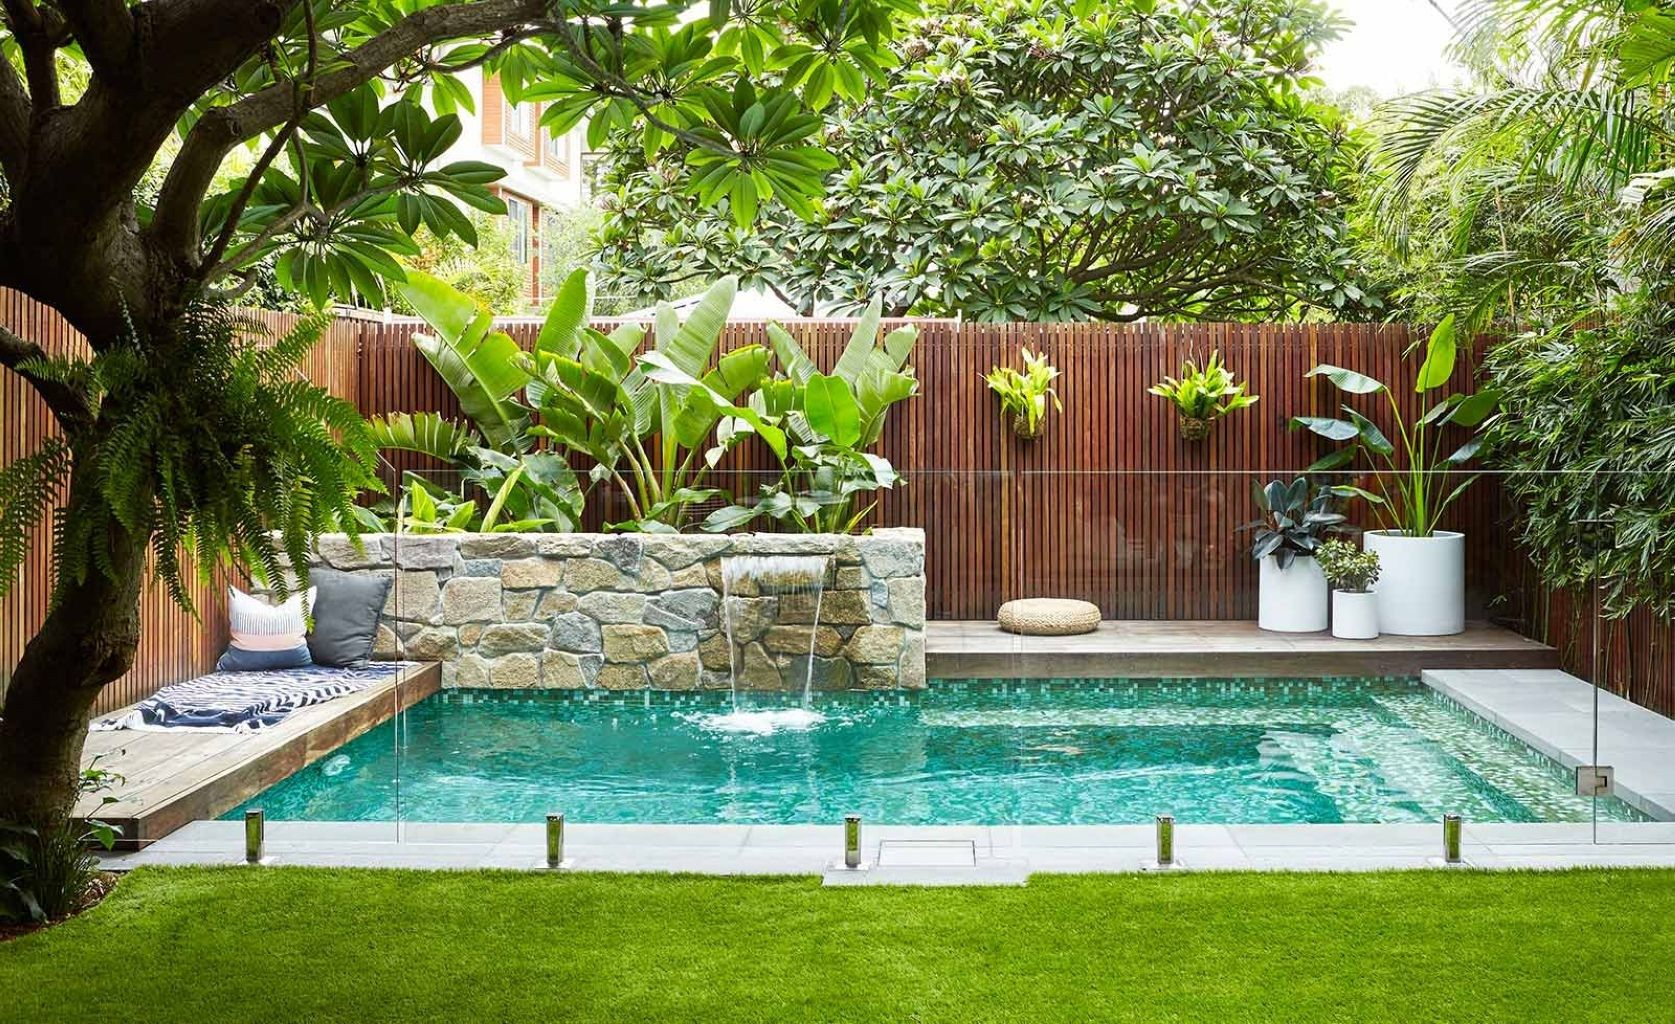 Best Small Pool Ideas For A Small Backyard 35 Toparchitecture